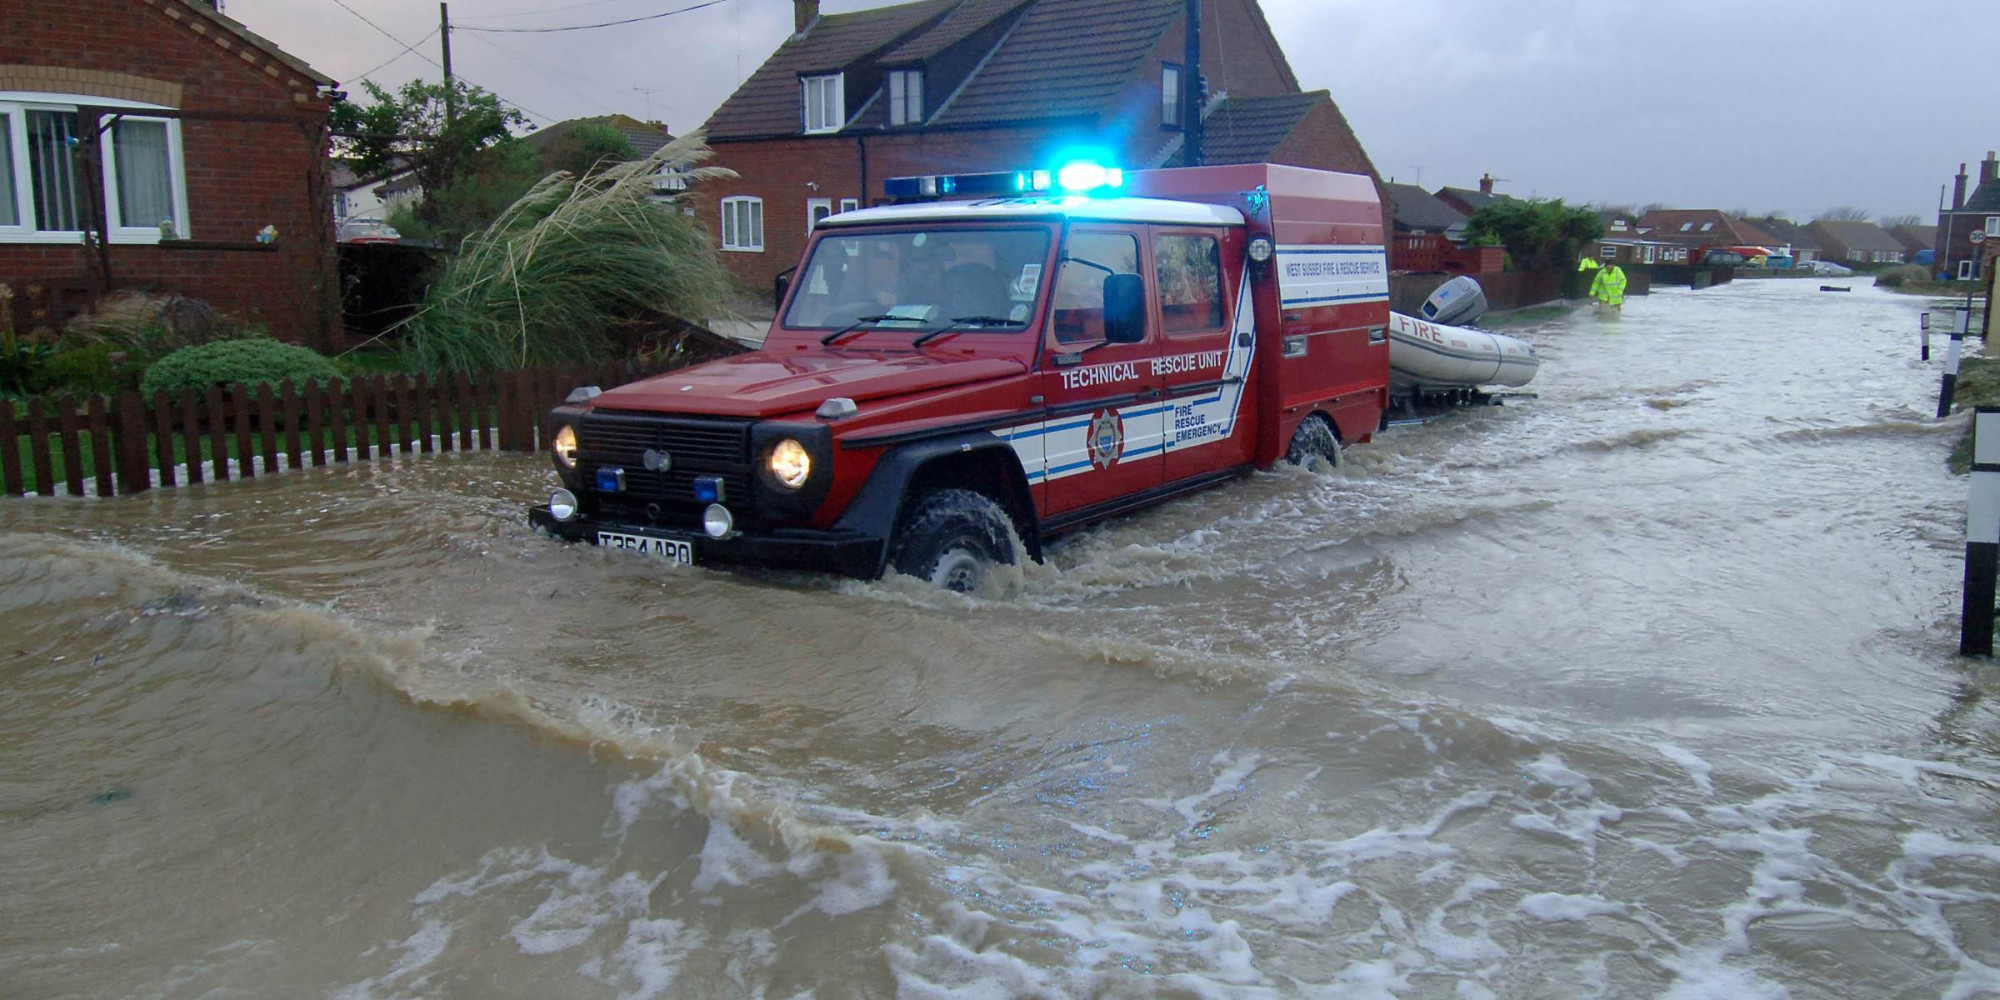 fire truck in flood